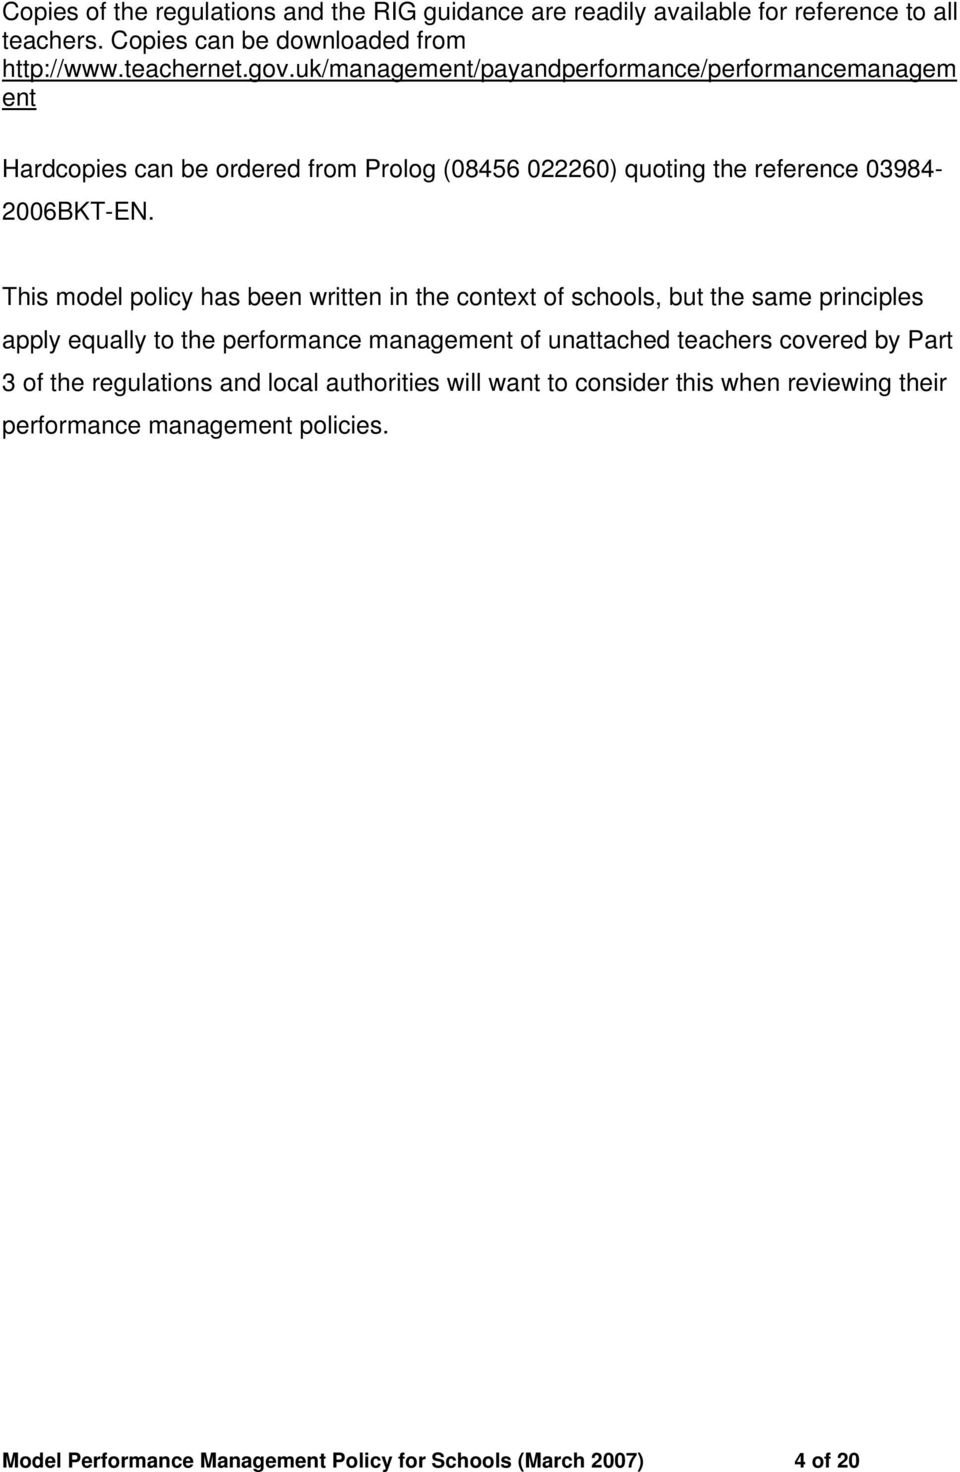 This model policy has been written in the context of schools, but the same principles apply equally to the performance management of unattached teachers covered by